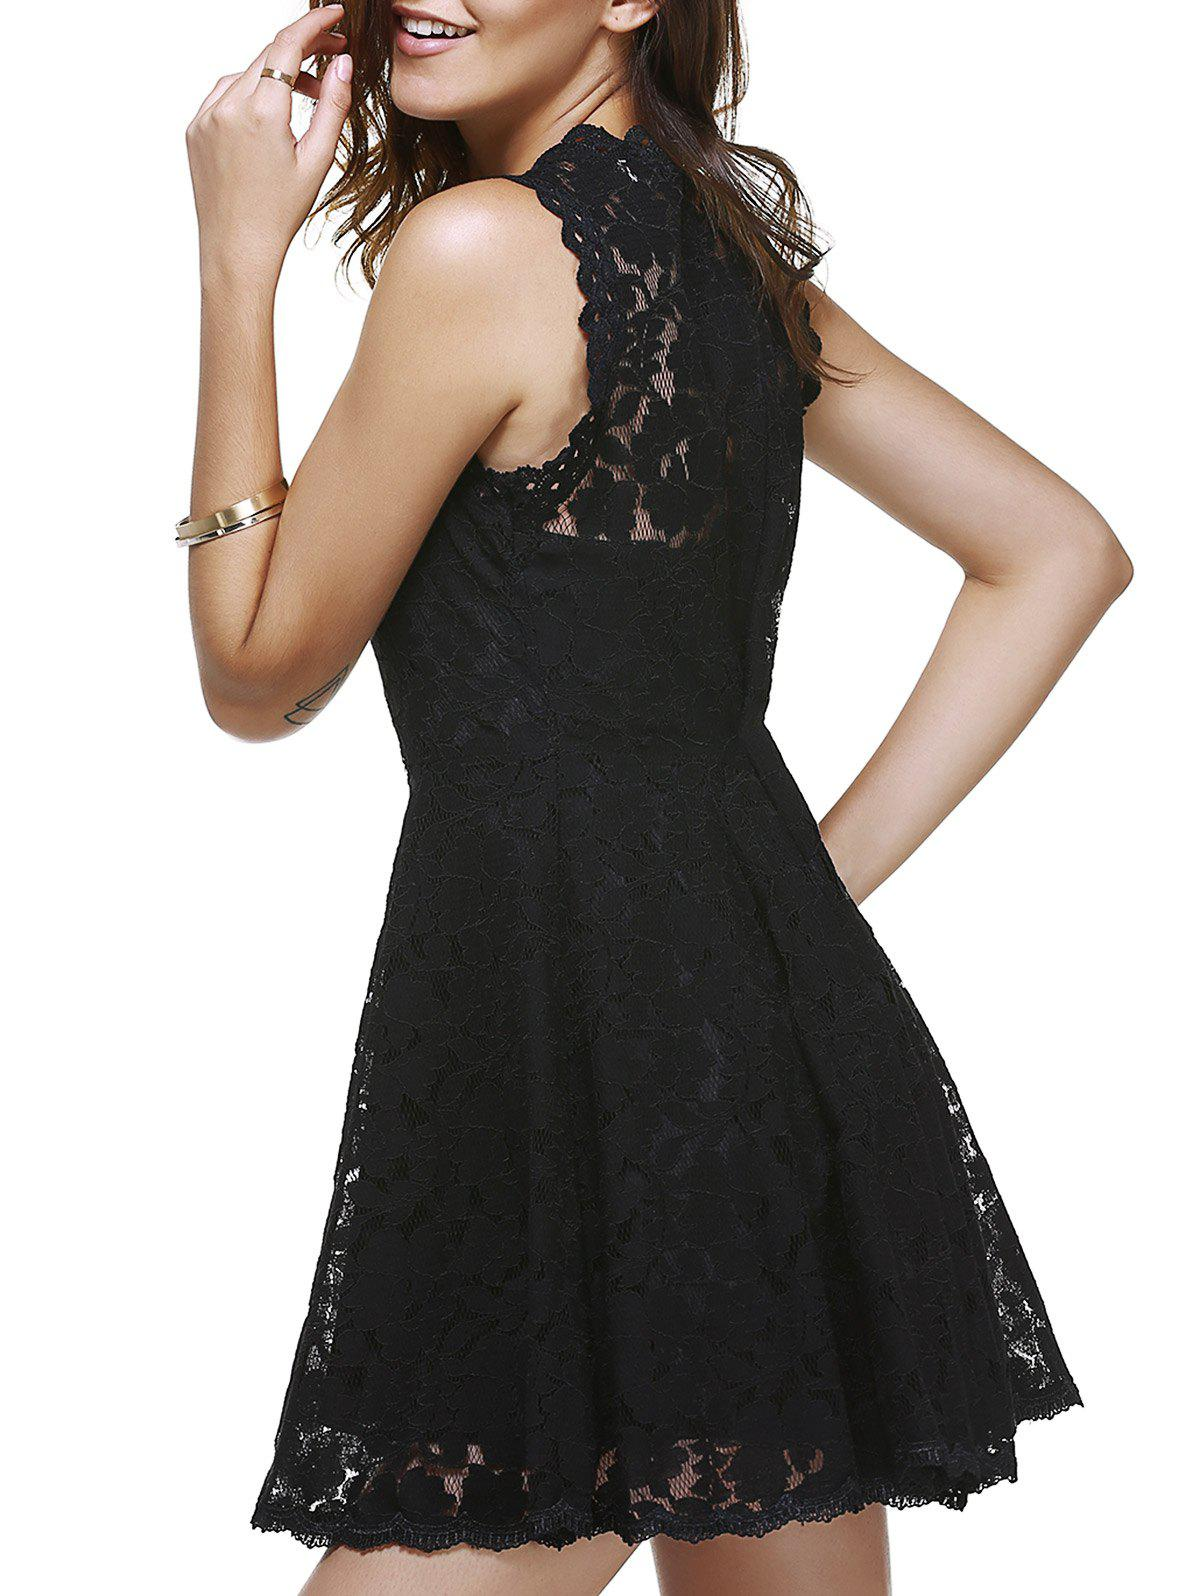 Brief Black Sleeveless Women's Lace Dress - BLACK ONE SIZE(FIT SIZE XS TO M)